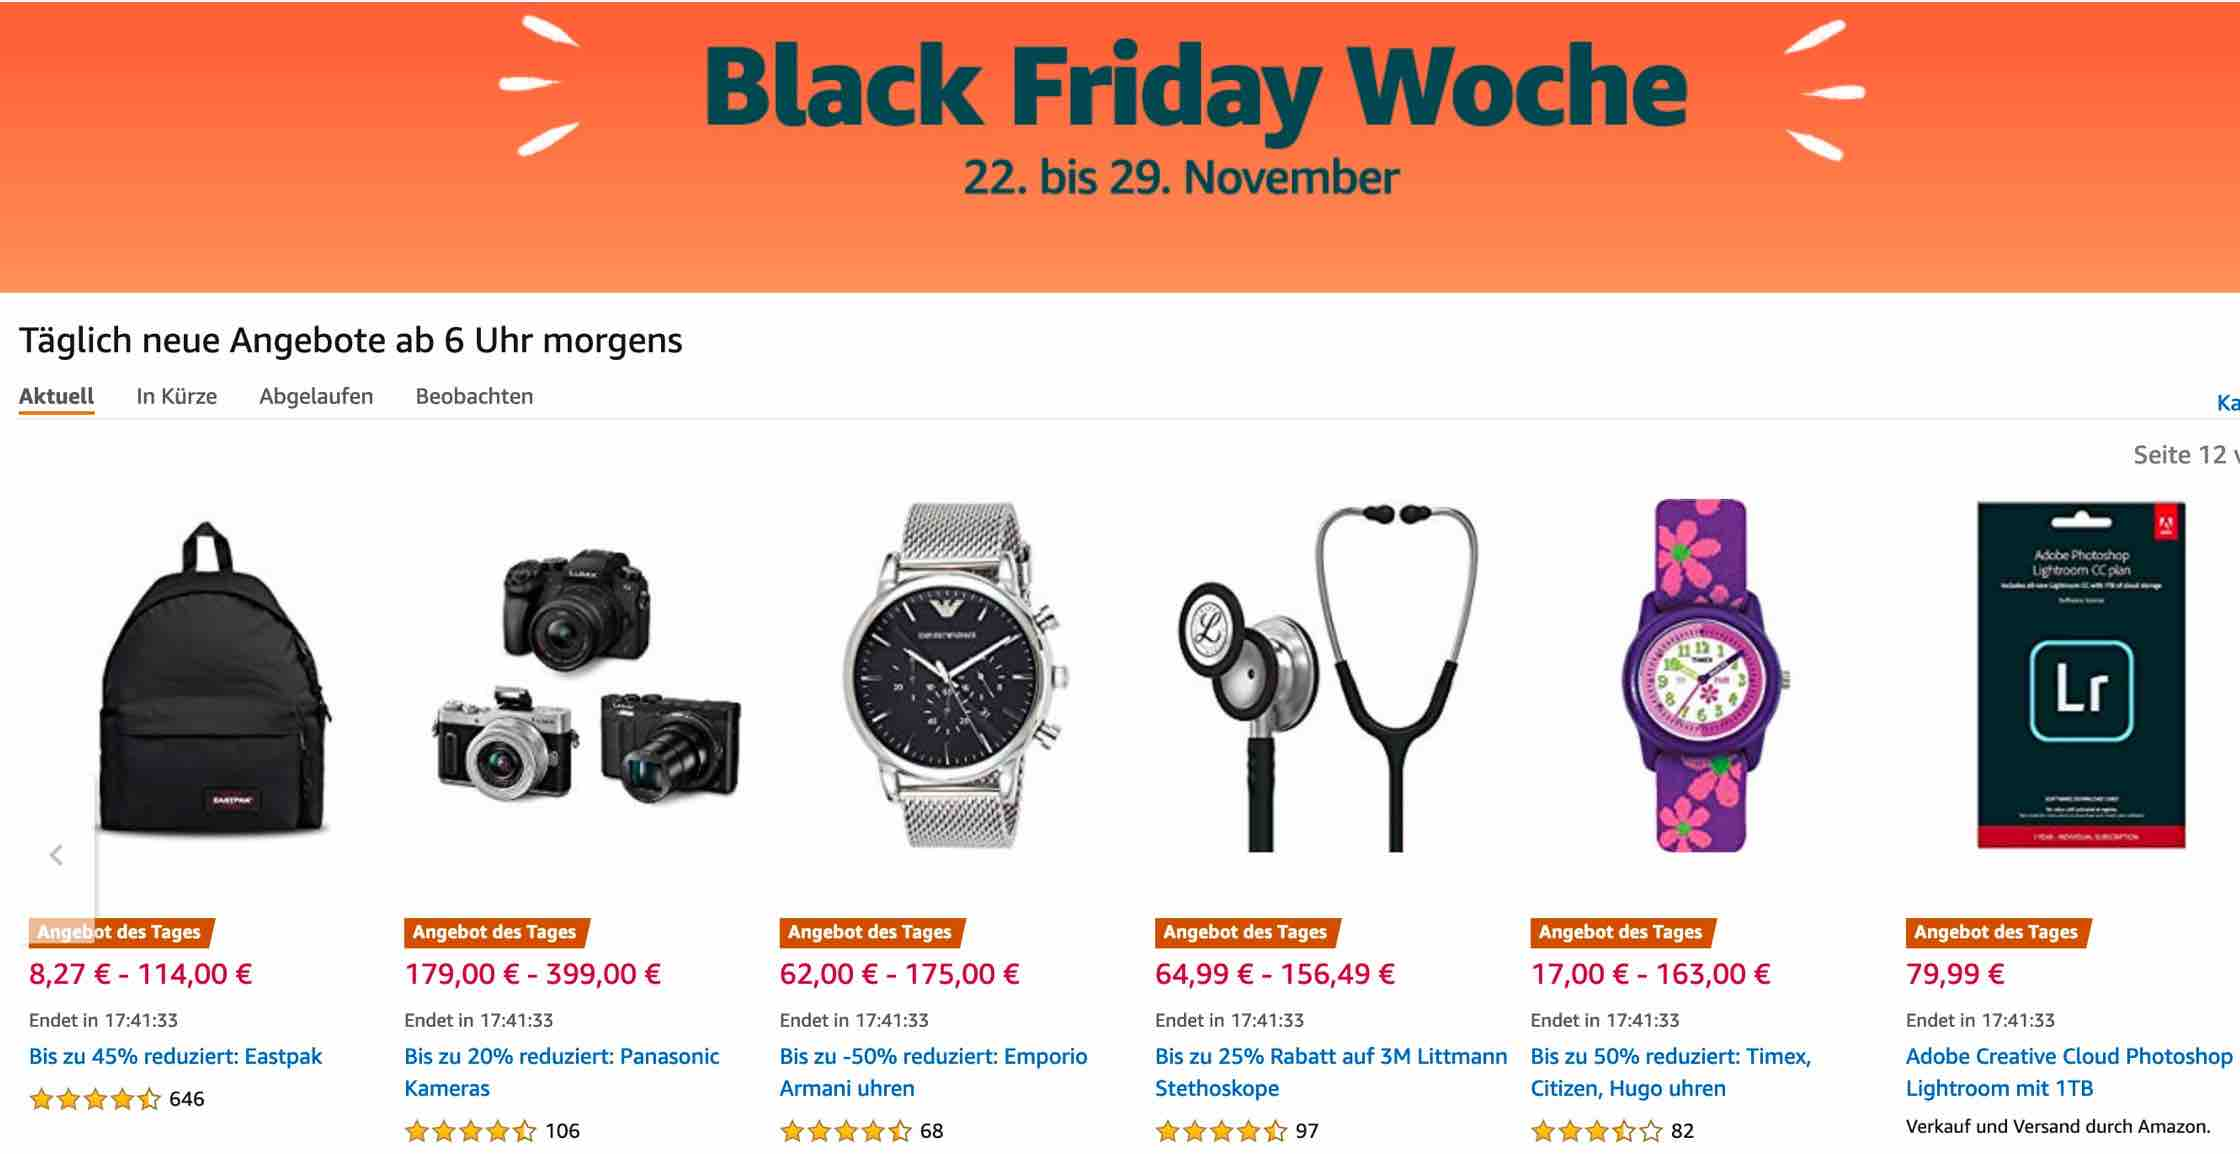 Black Friday Deals Start Now At Amazon Europe Keh Black Friday Flash Deal Fuji Rumors